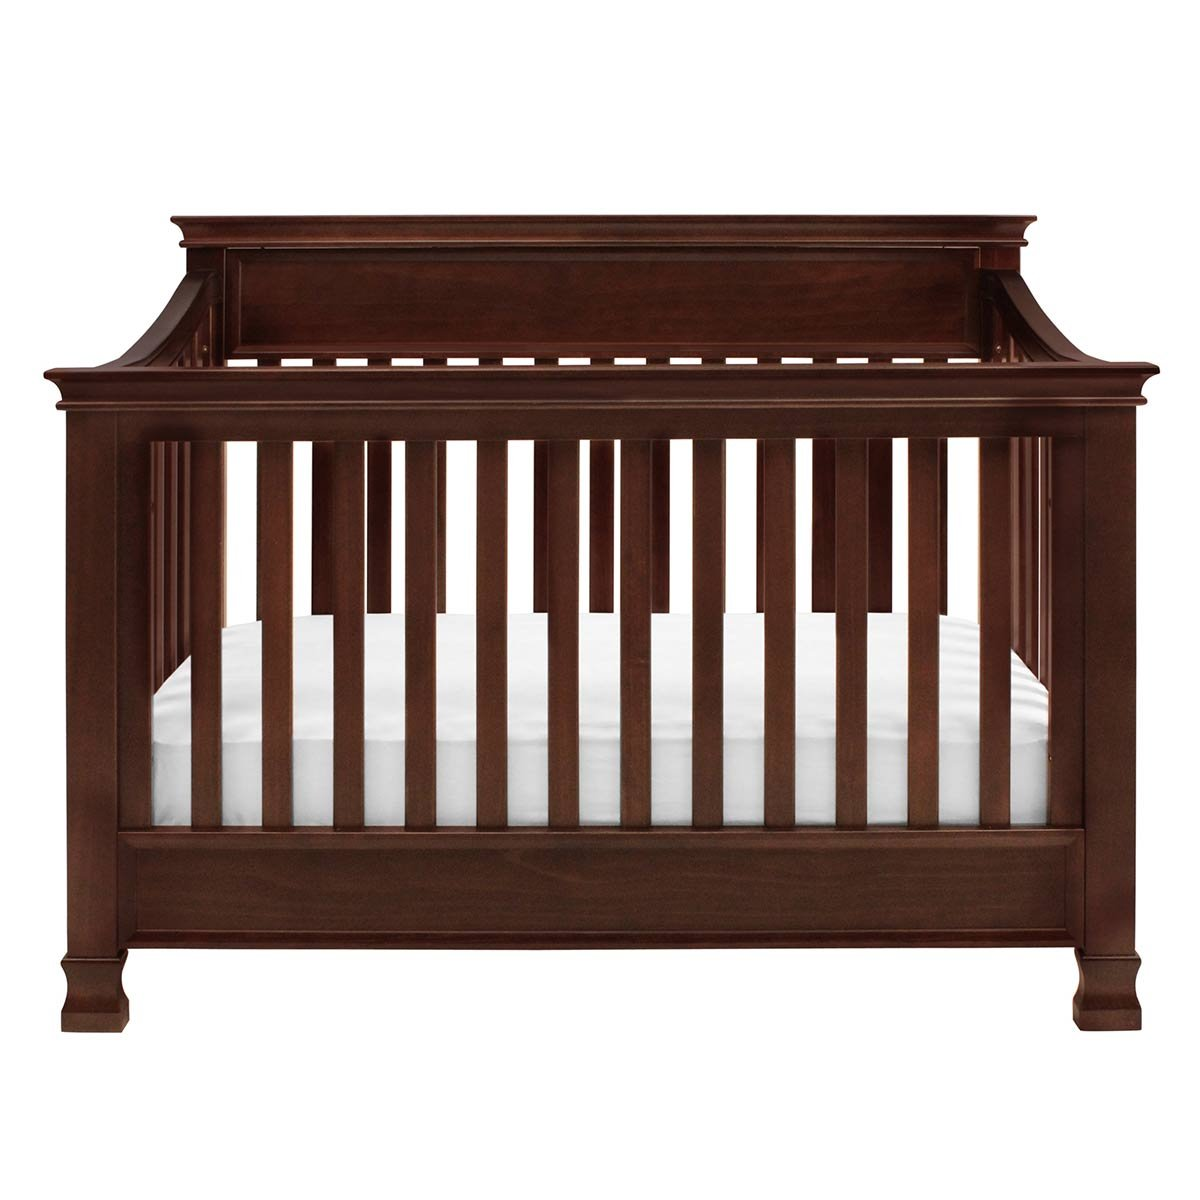 Full Size Conversion Kit Bed Rails for Million Dollar Baby Ashbury, Foothill & Louis Cribs - Espresso by Grow-with-Me Crib Conversion Kits (Image #6)